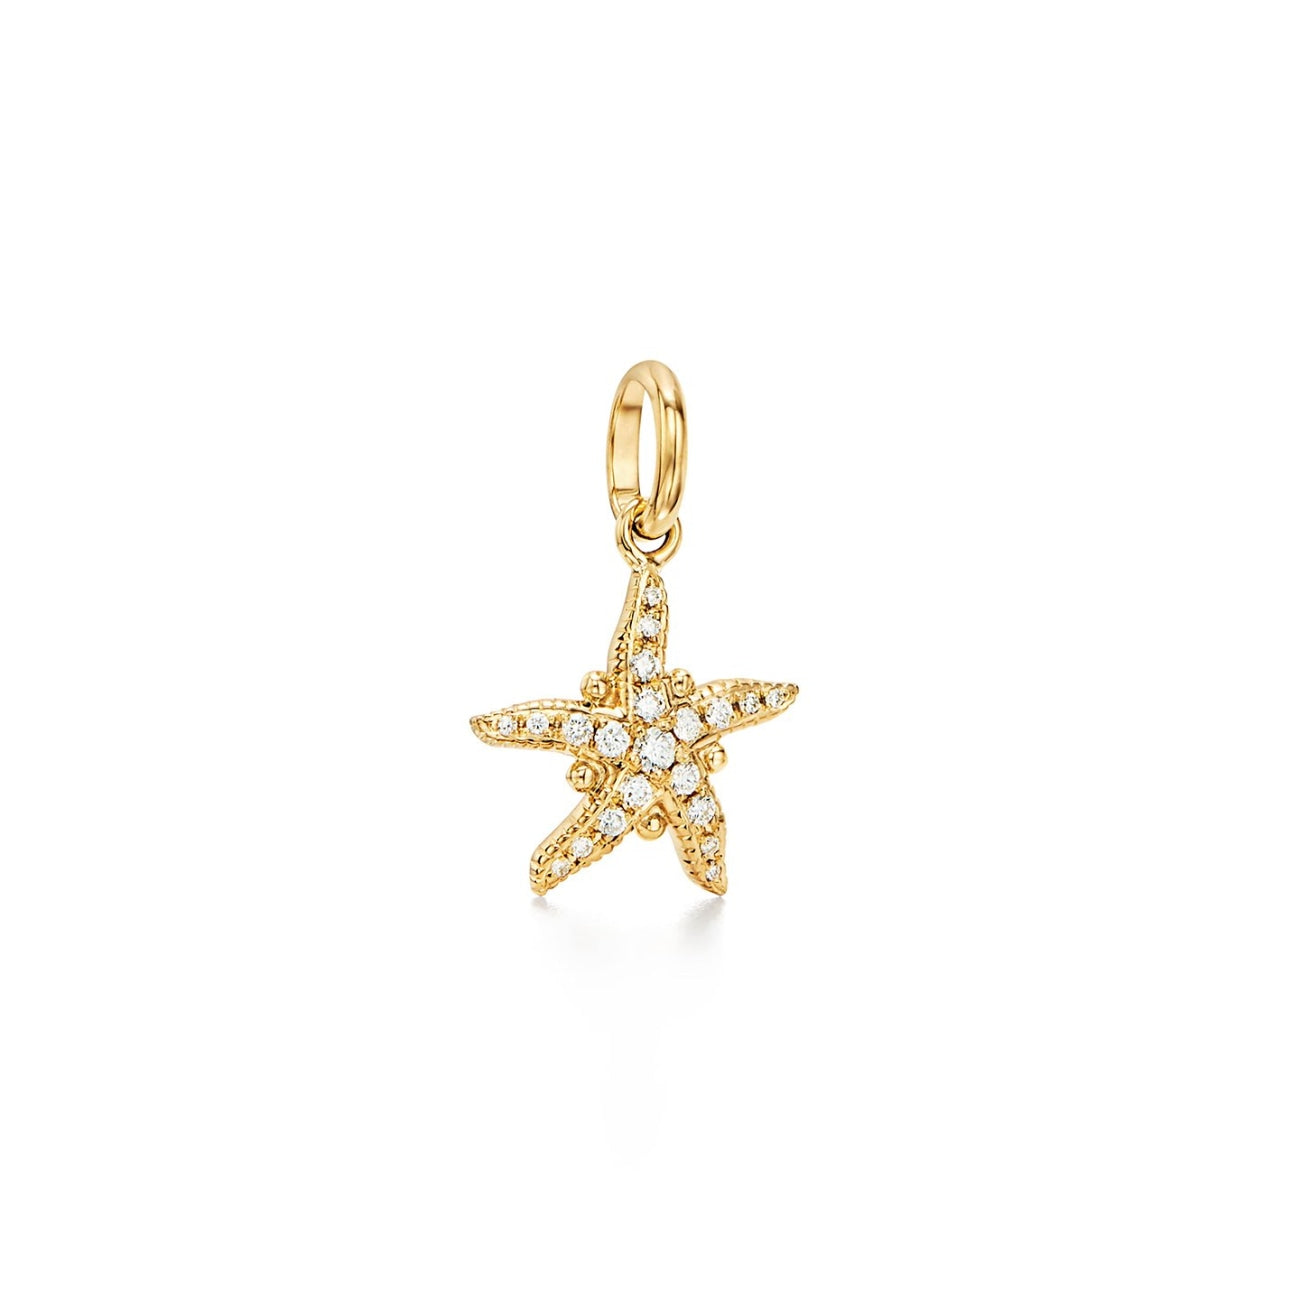 Temple St Clair Jewelry - 18K Sea Star Pendant with diamond pavé | Manfredi Jewels